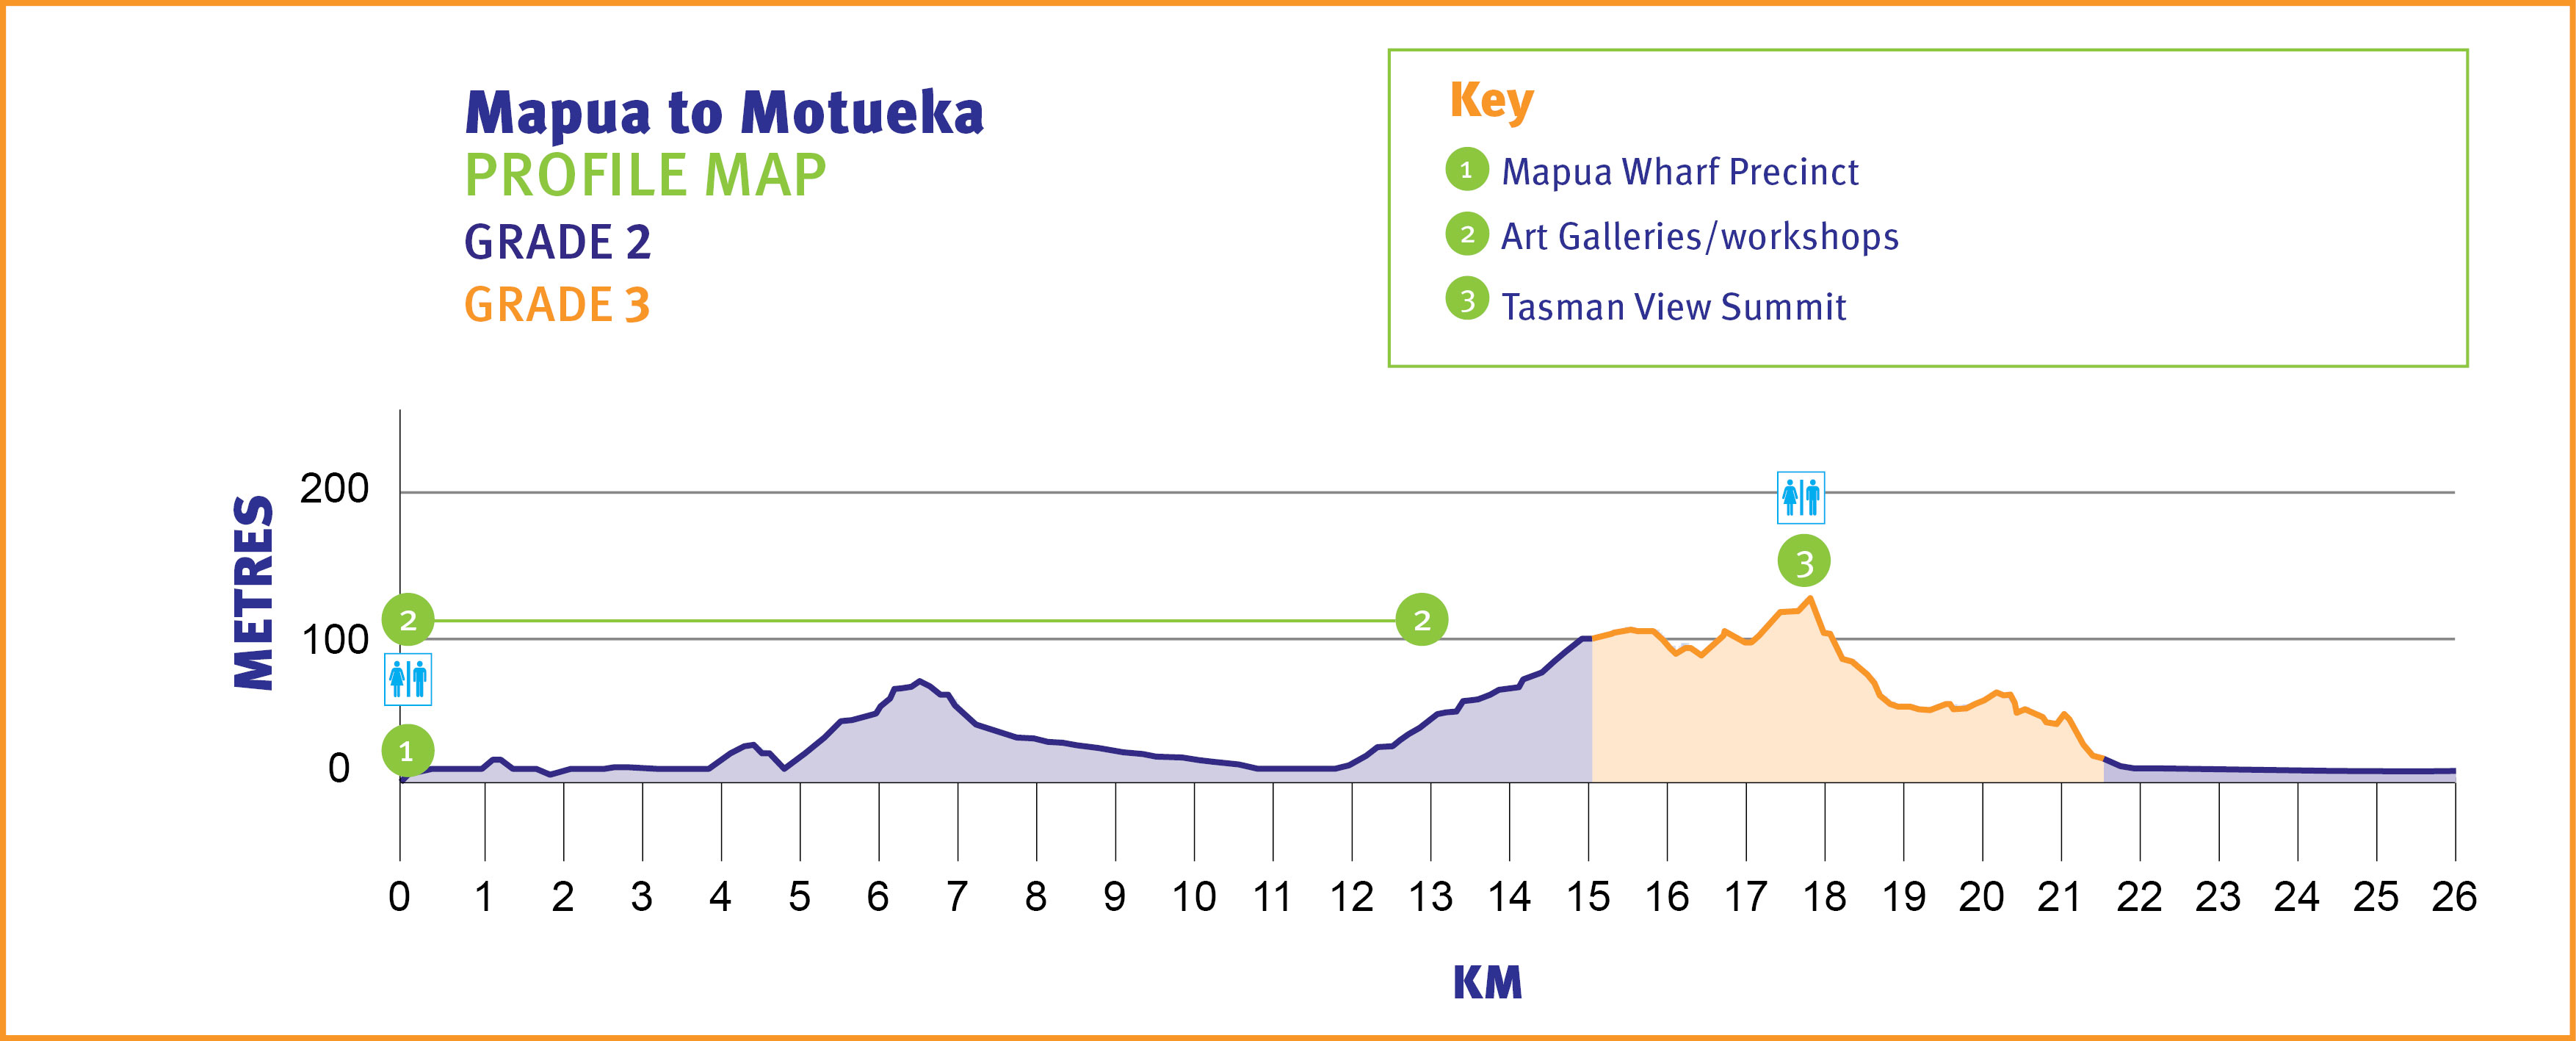 Mapua to Motueka Profile Map